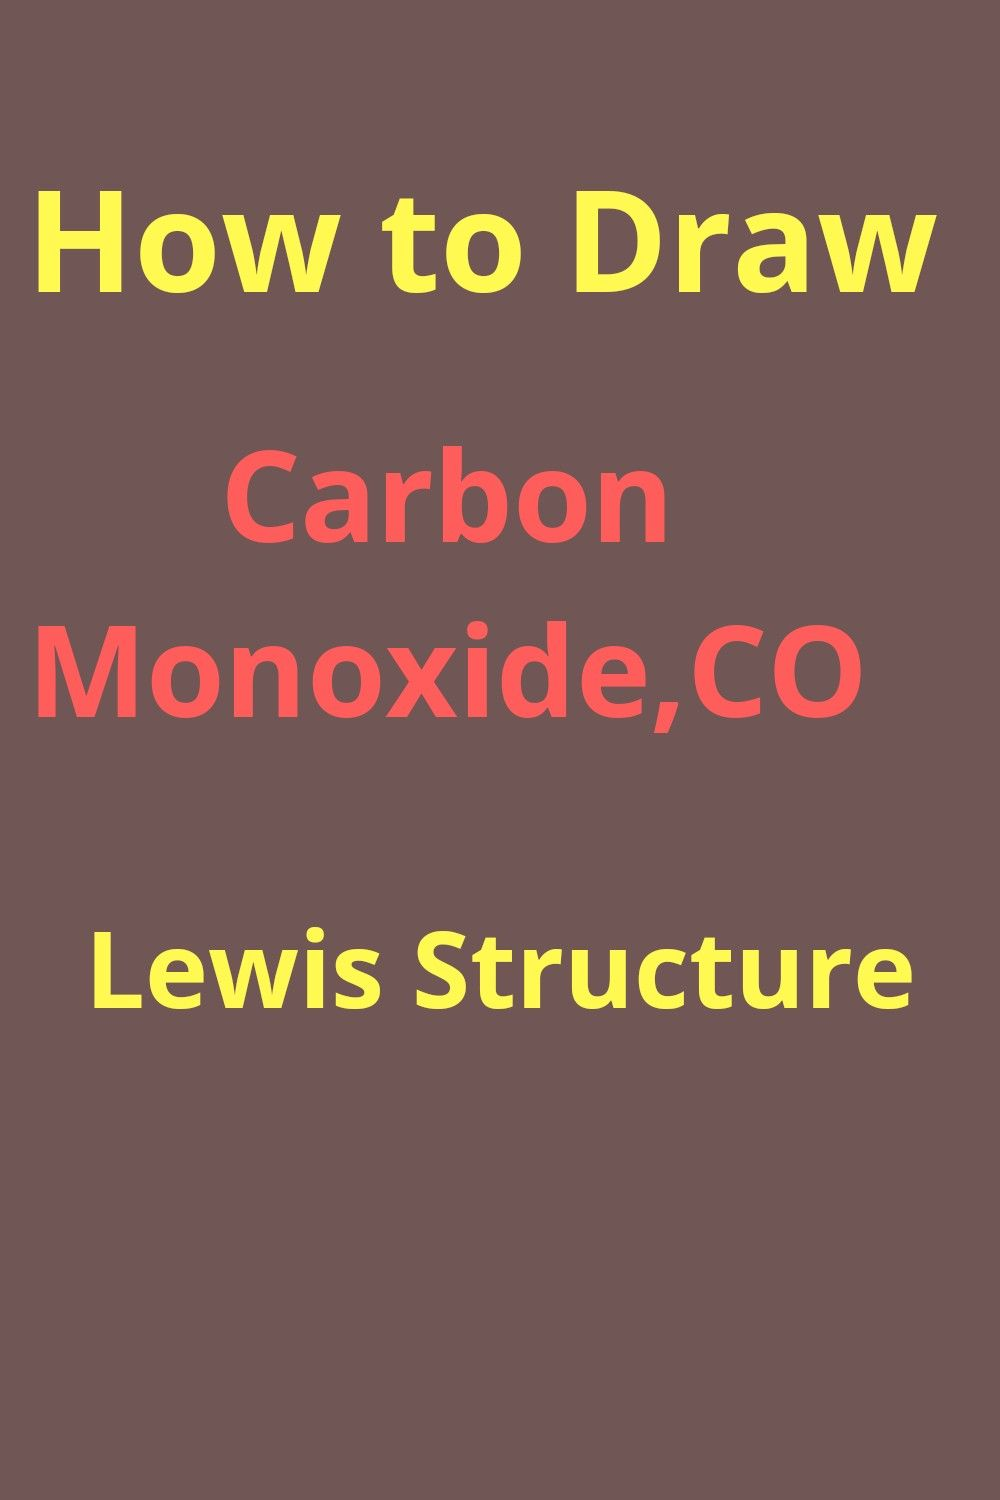 Lewis Structure Of Co : lewis, structure, Carbon, Monoxide, Lewis, Structure, Chemistry, Worksheets,, Lewis,